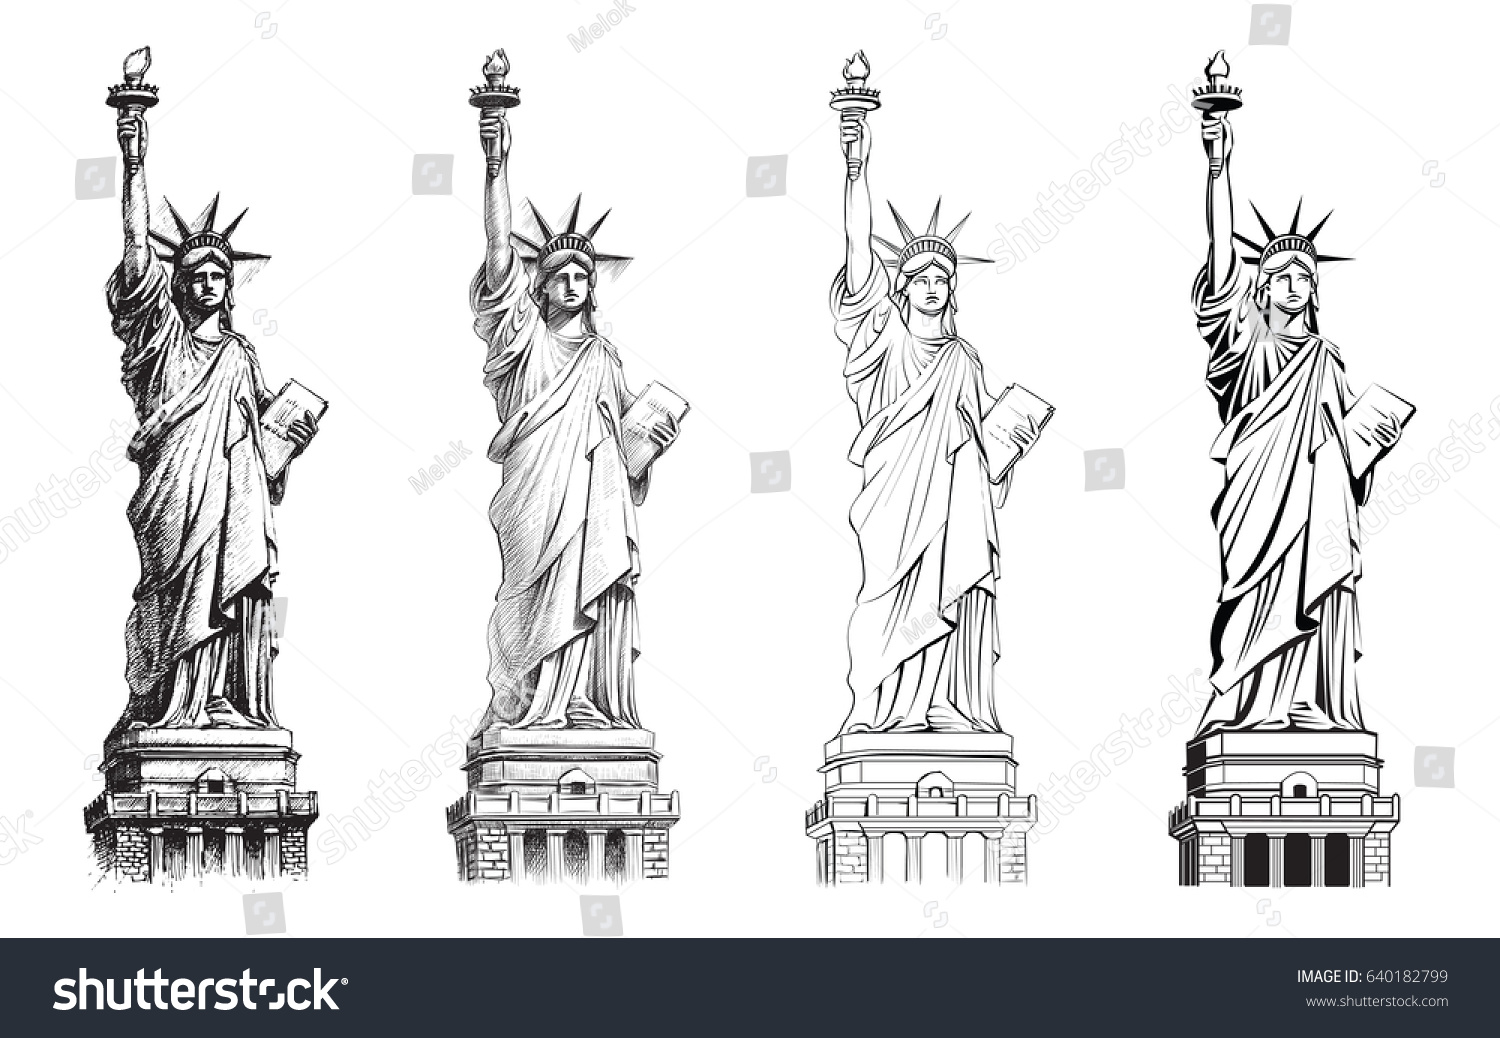 Statue of liberty, vector set. Illustration of various drawing styles. Hand drawn line, realistic ink sketch, outline and flat. New York and USA landmark. American national symbol.